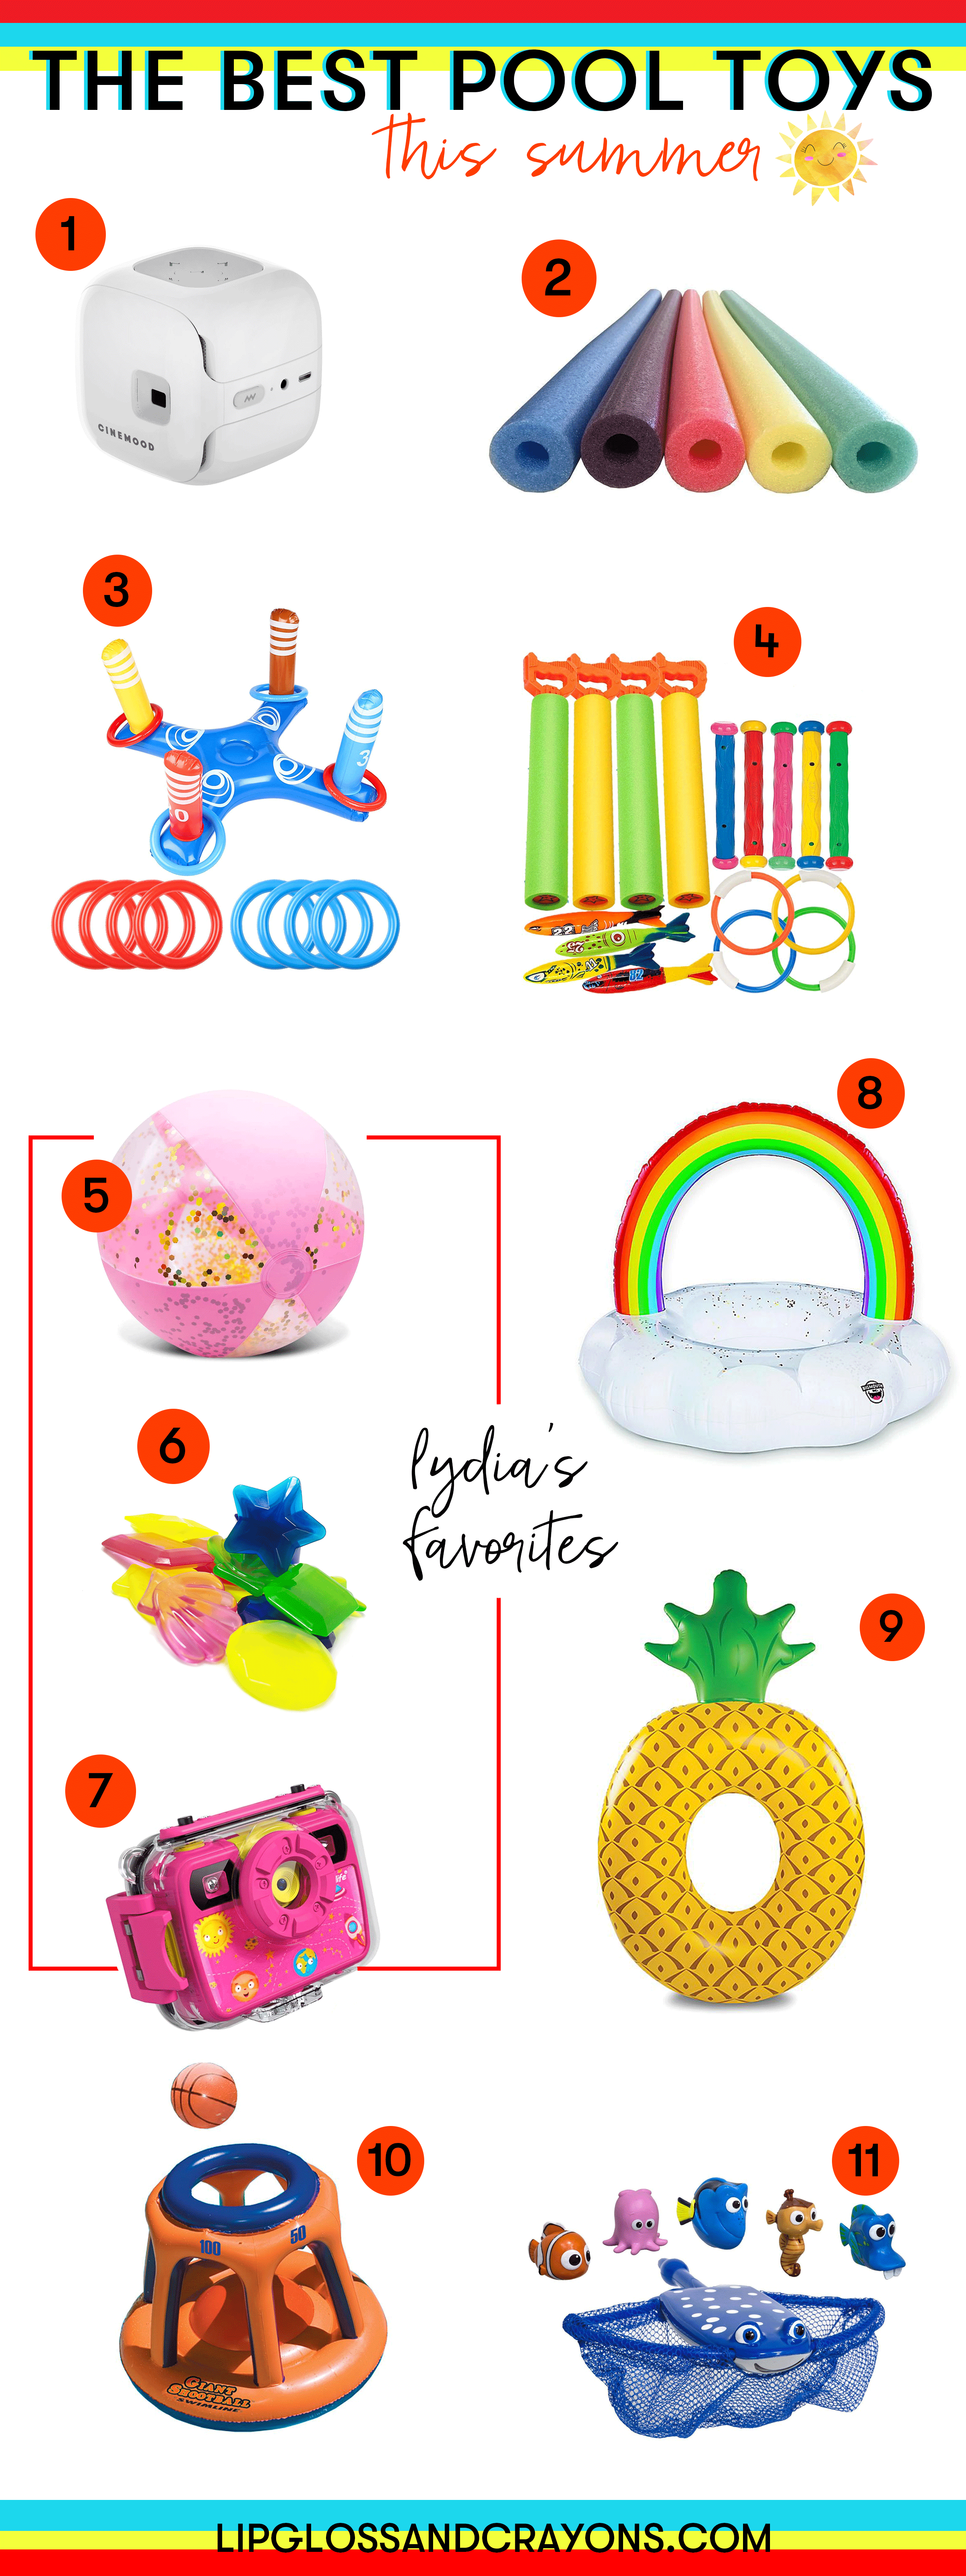 On the hunt for the best pool toys for kids? These are our top picks!